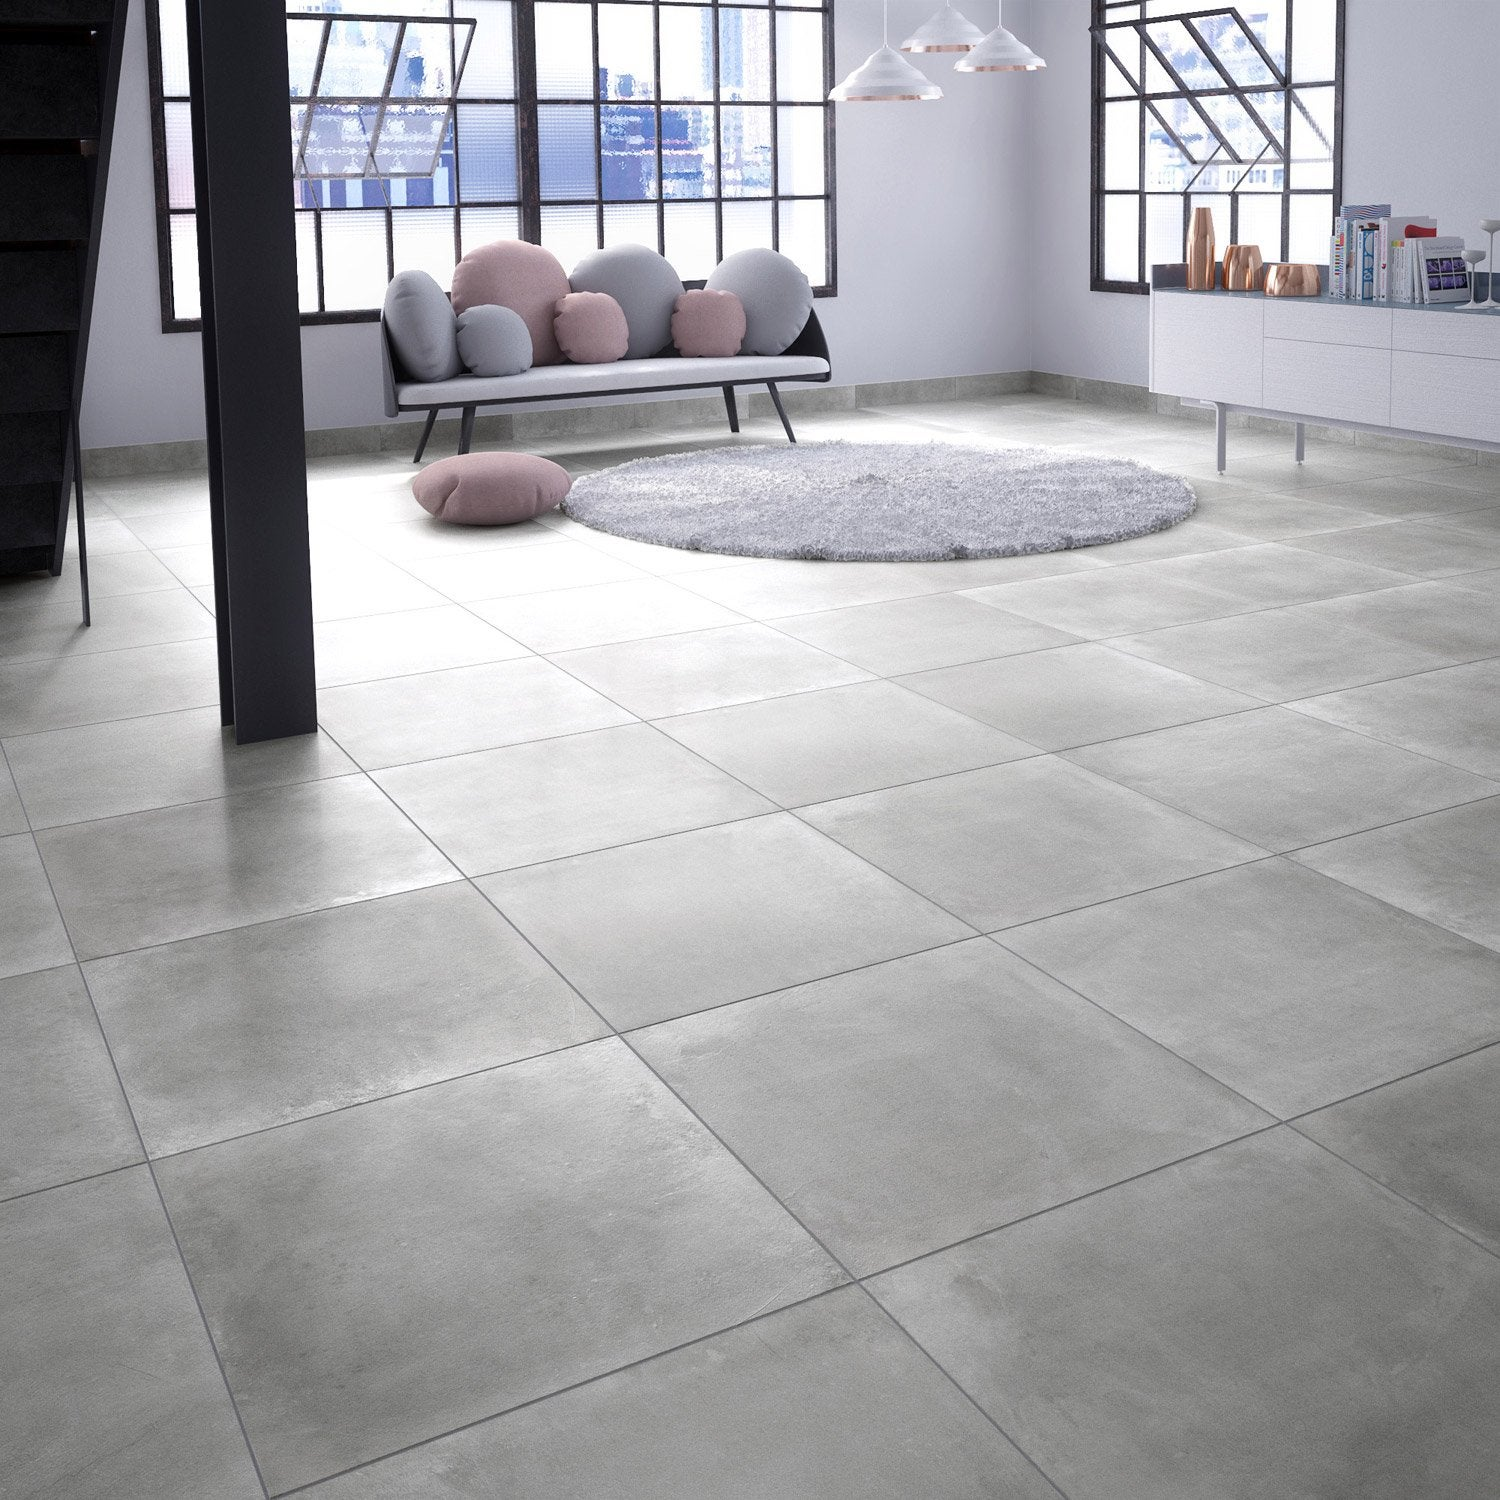 Carrelage imitation parquet gris for Carrelage interieur leroy merlin